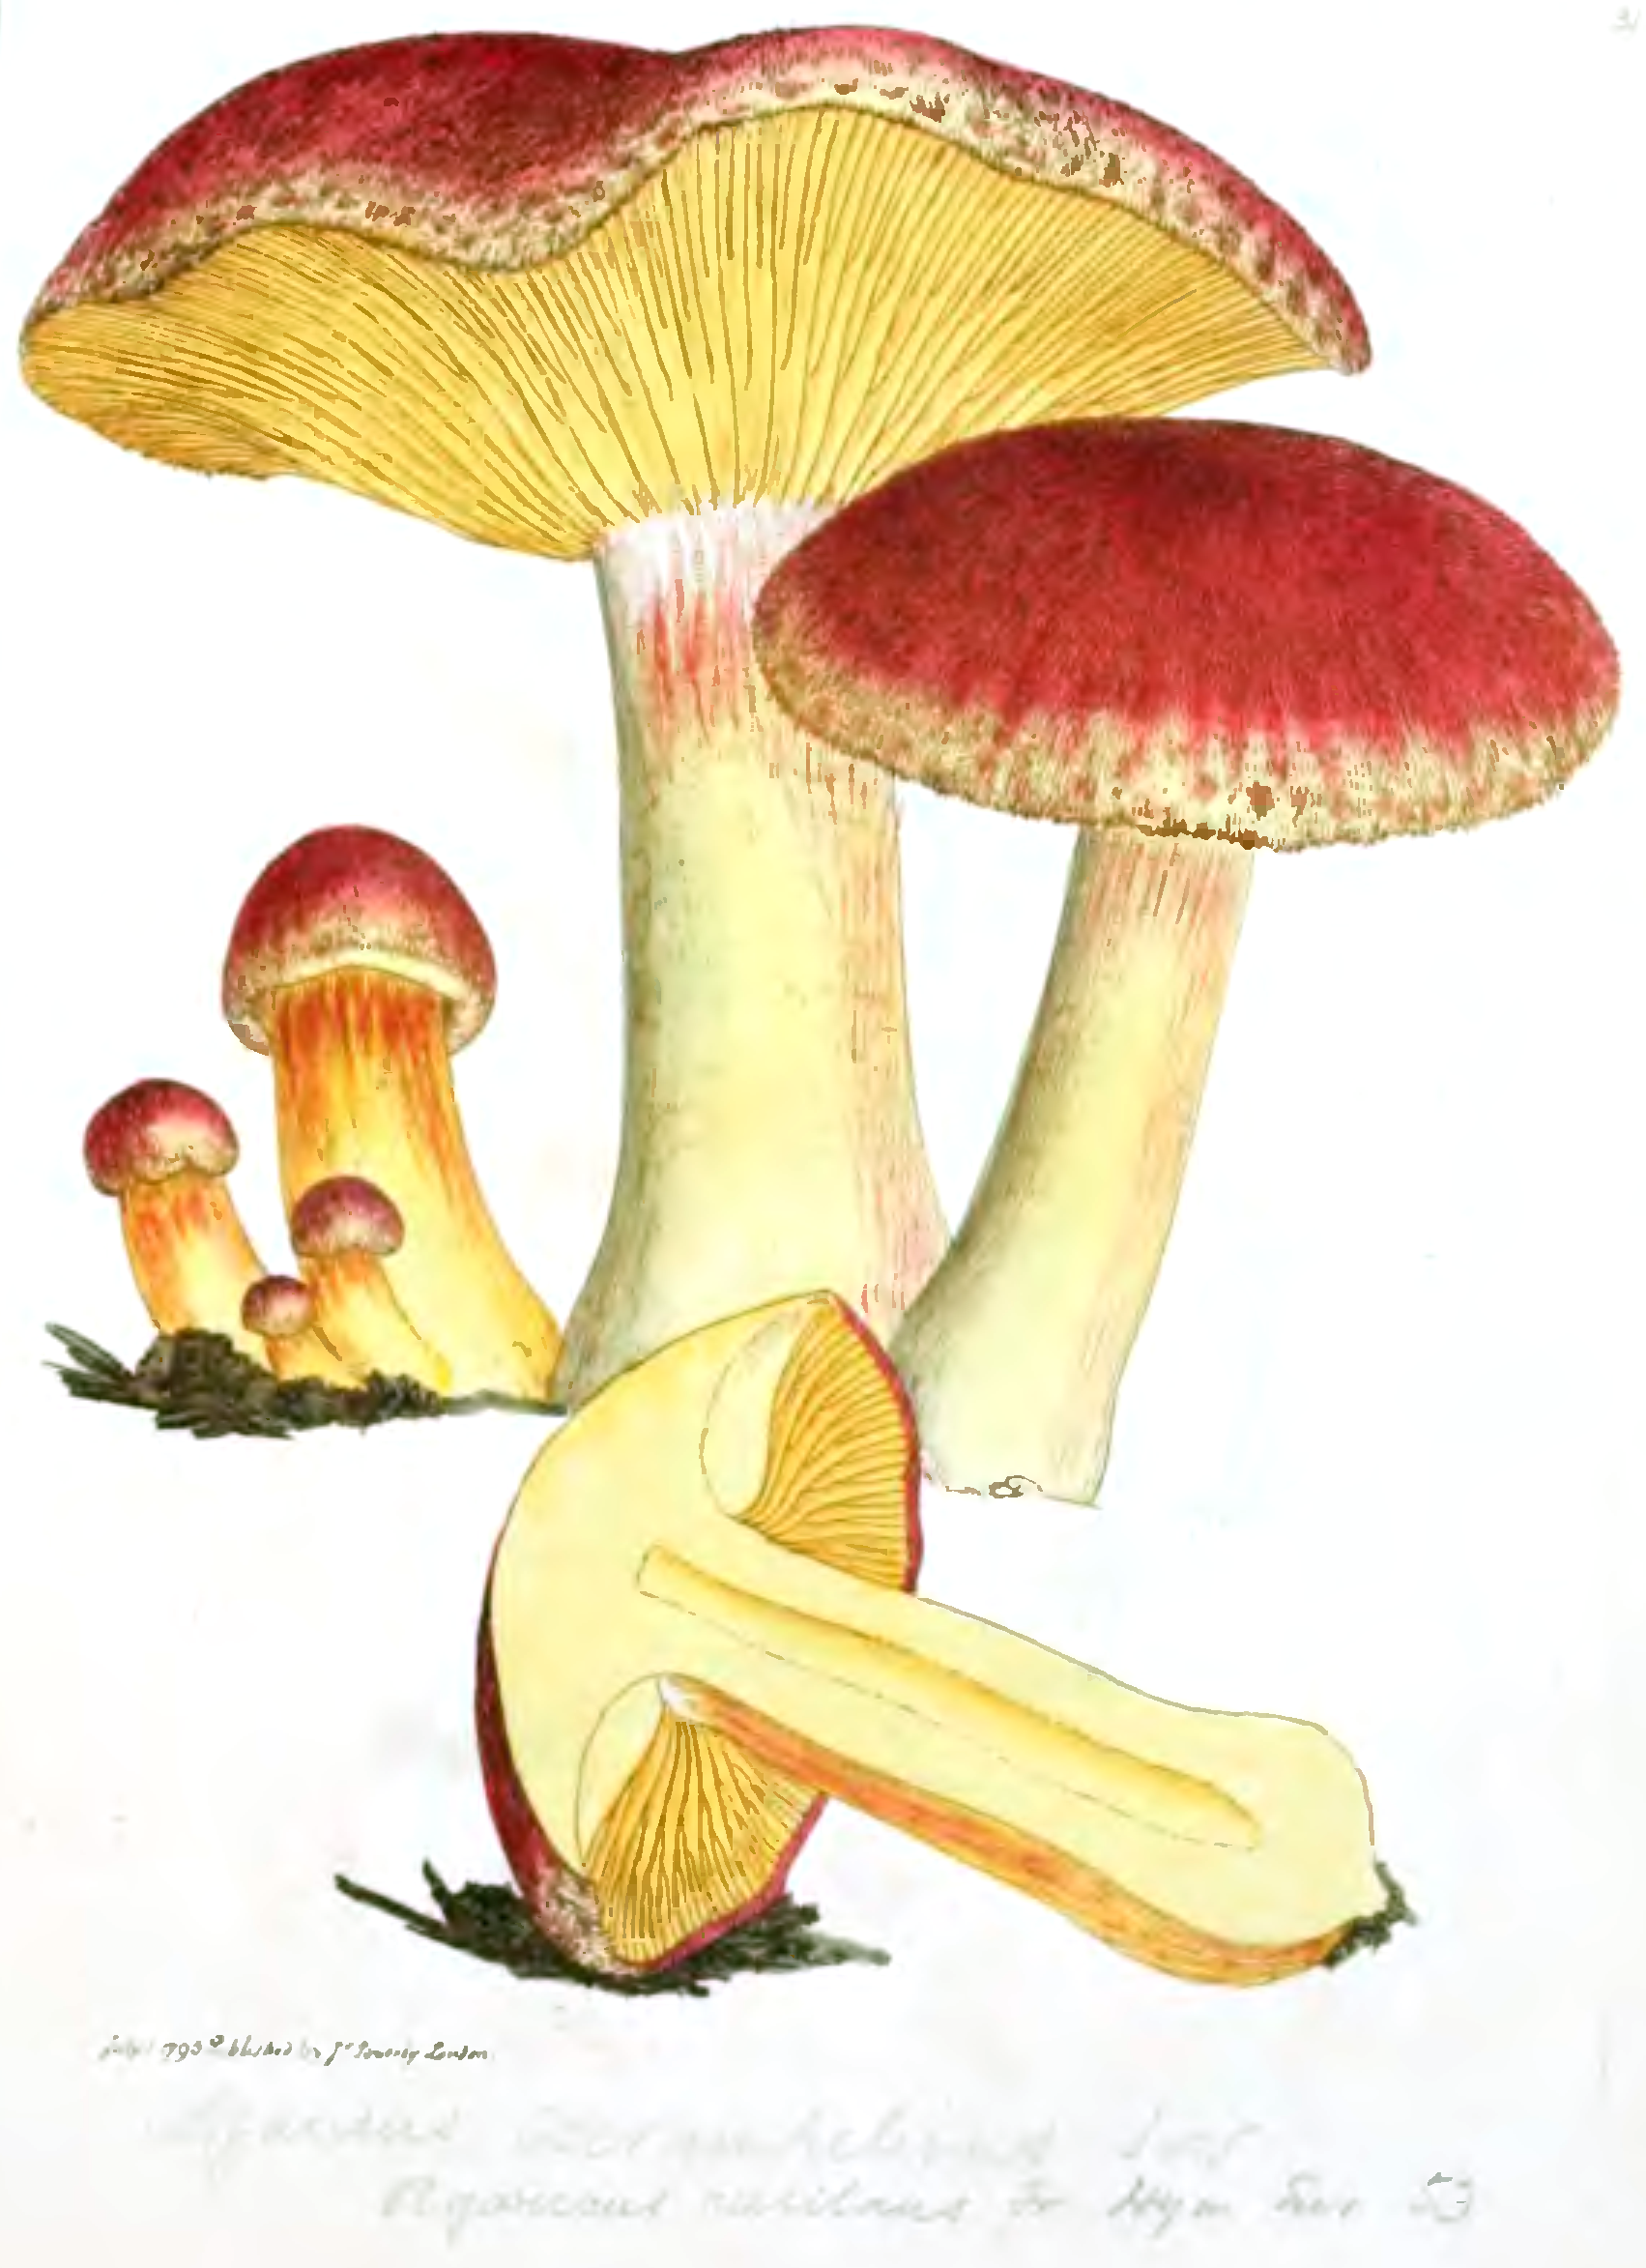 How to sow mushrooms